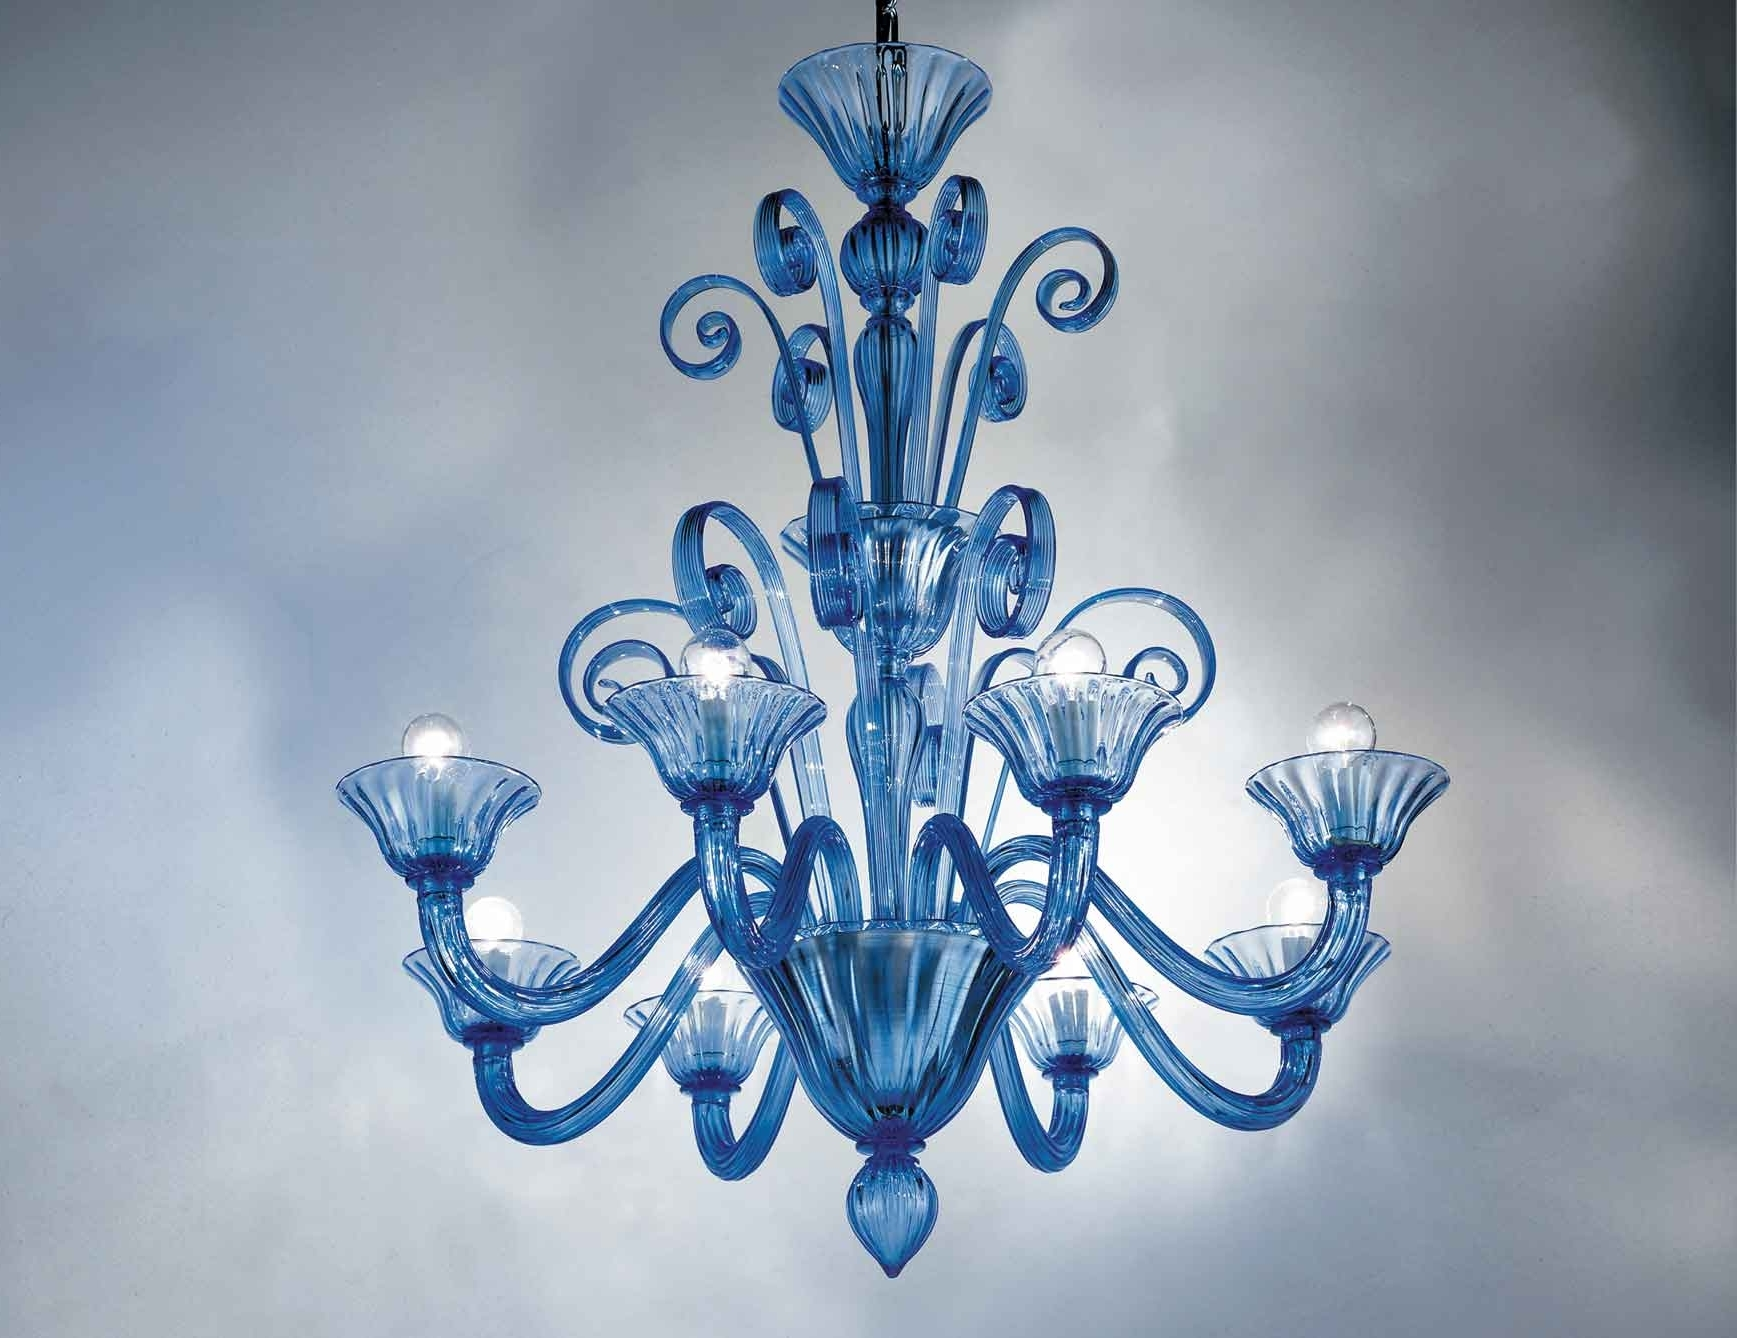 Murano Chandelier Replica Regarding Most Current Nella Vetrina Melissa 9003 08 Venetian Chandelier In Light Blue (View 11 of 15)